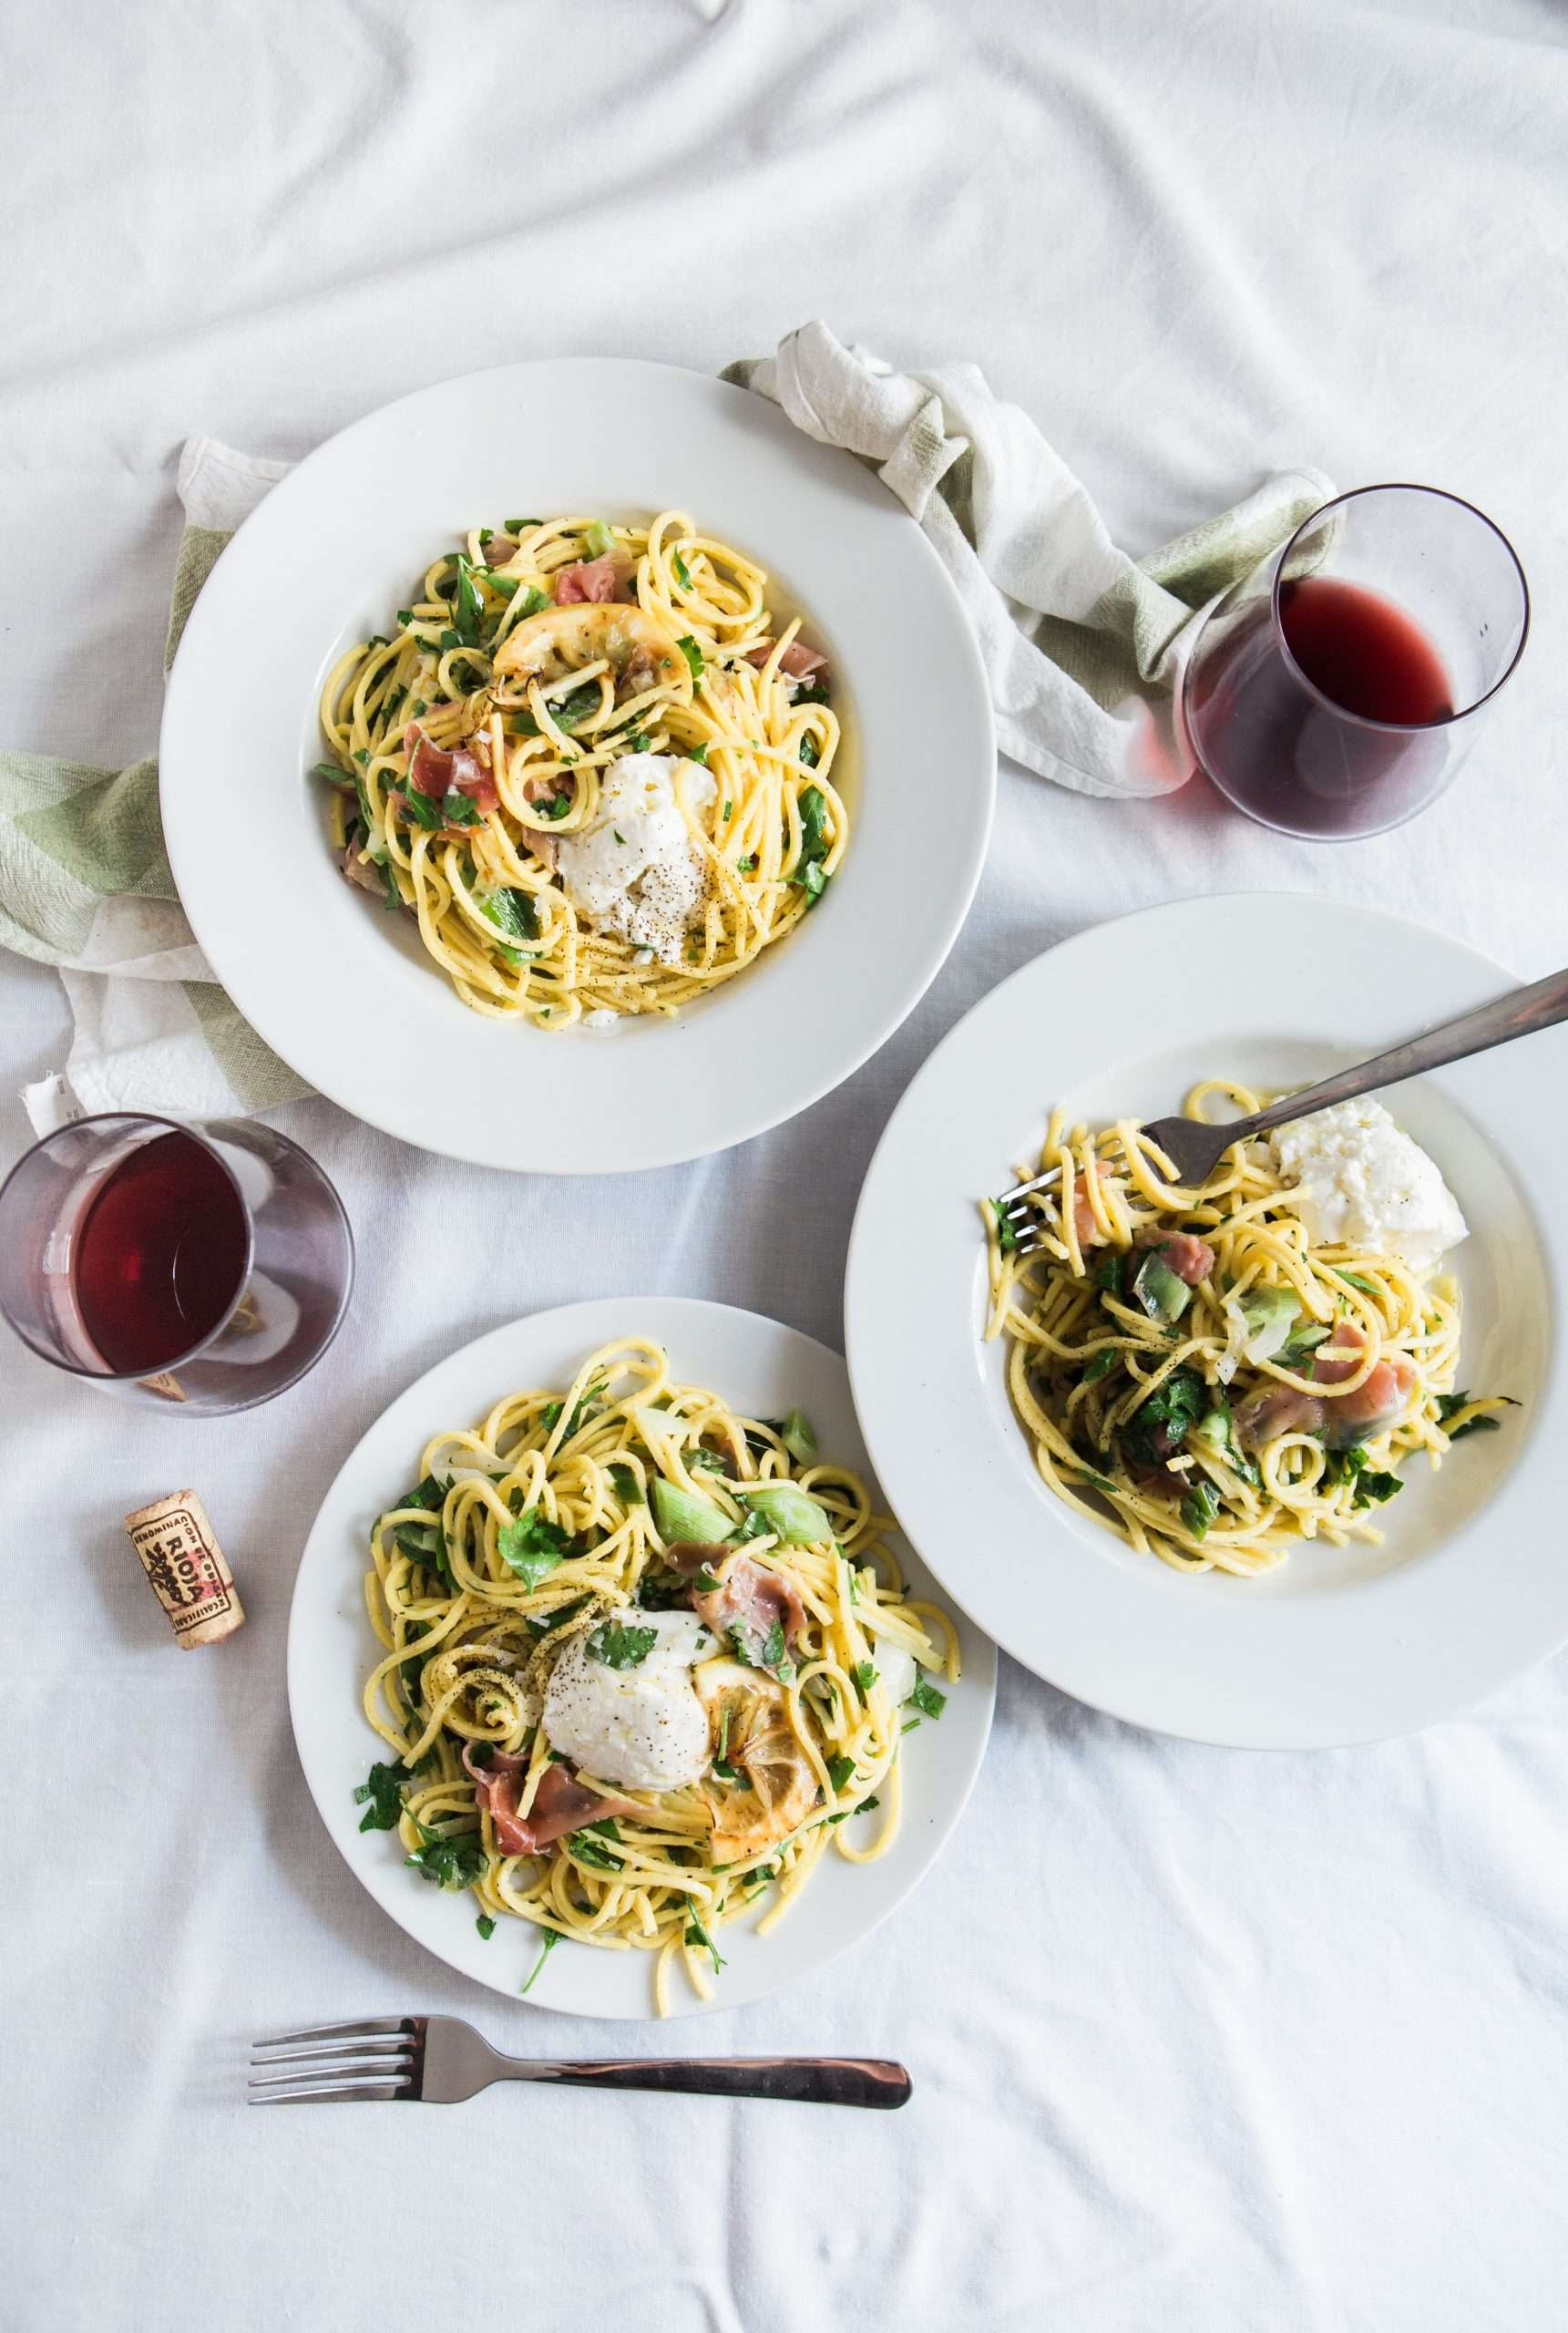 Typical Italian dishes such as spaghetti and pasta with red wine.